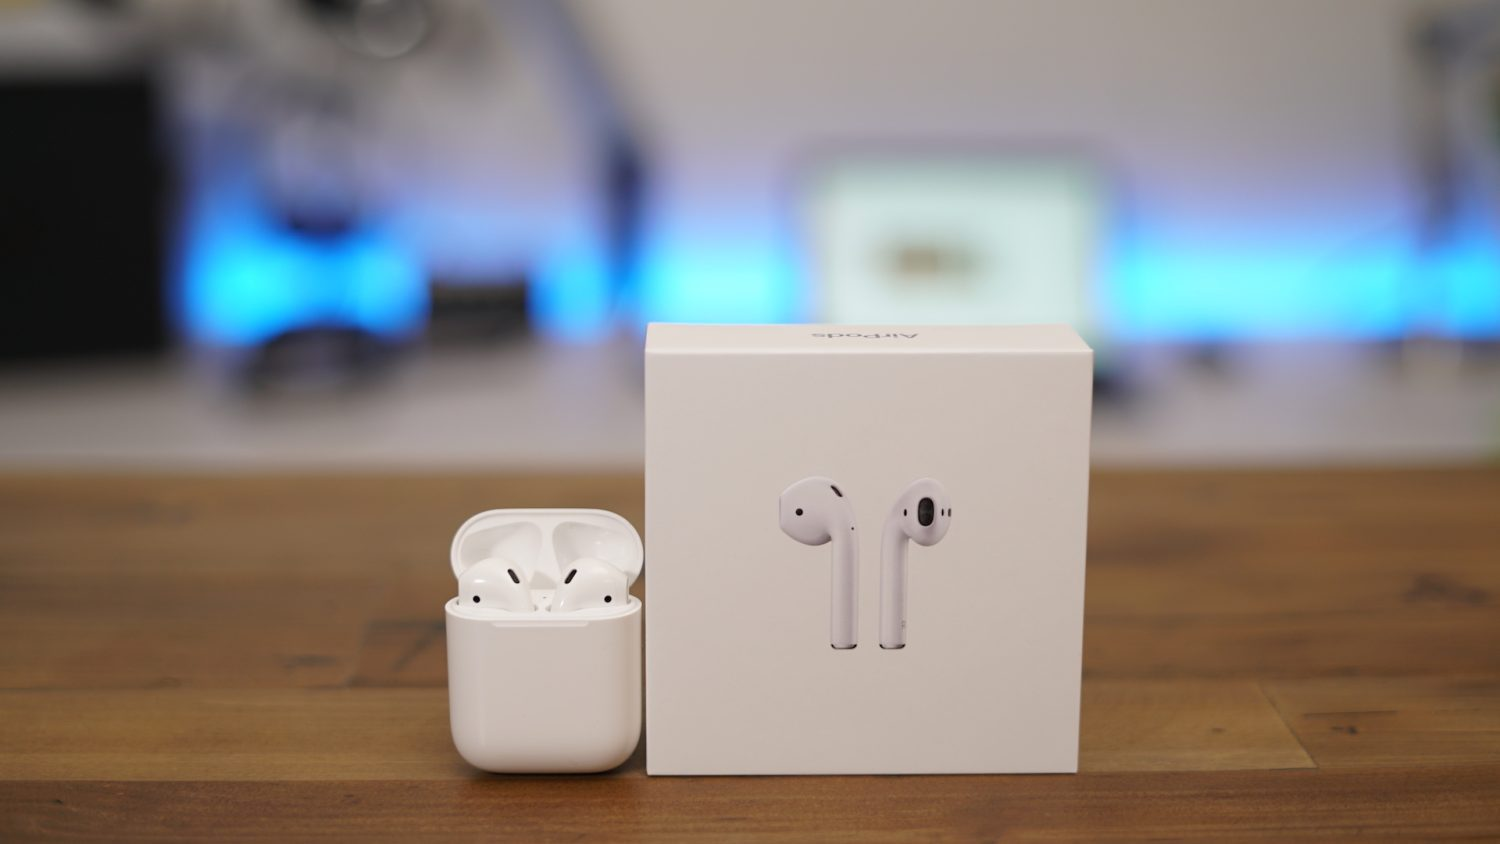 Economic Daily News: Updated AirPods in production with black color option, launching alongside AirPower in spring